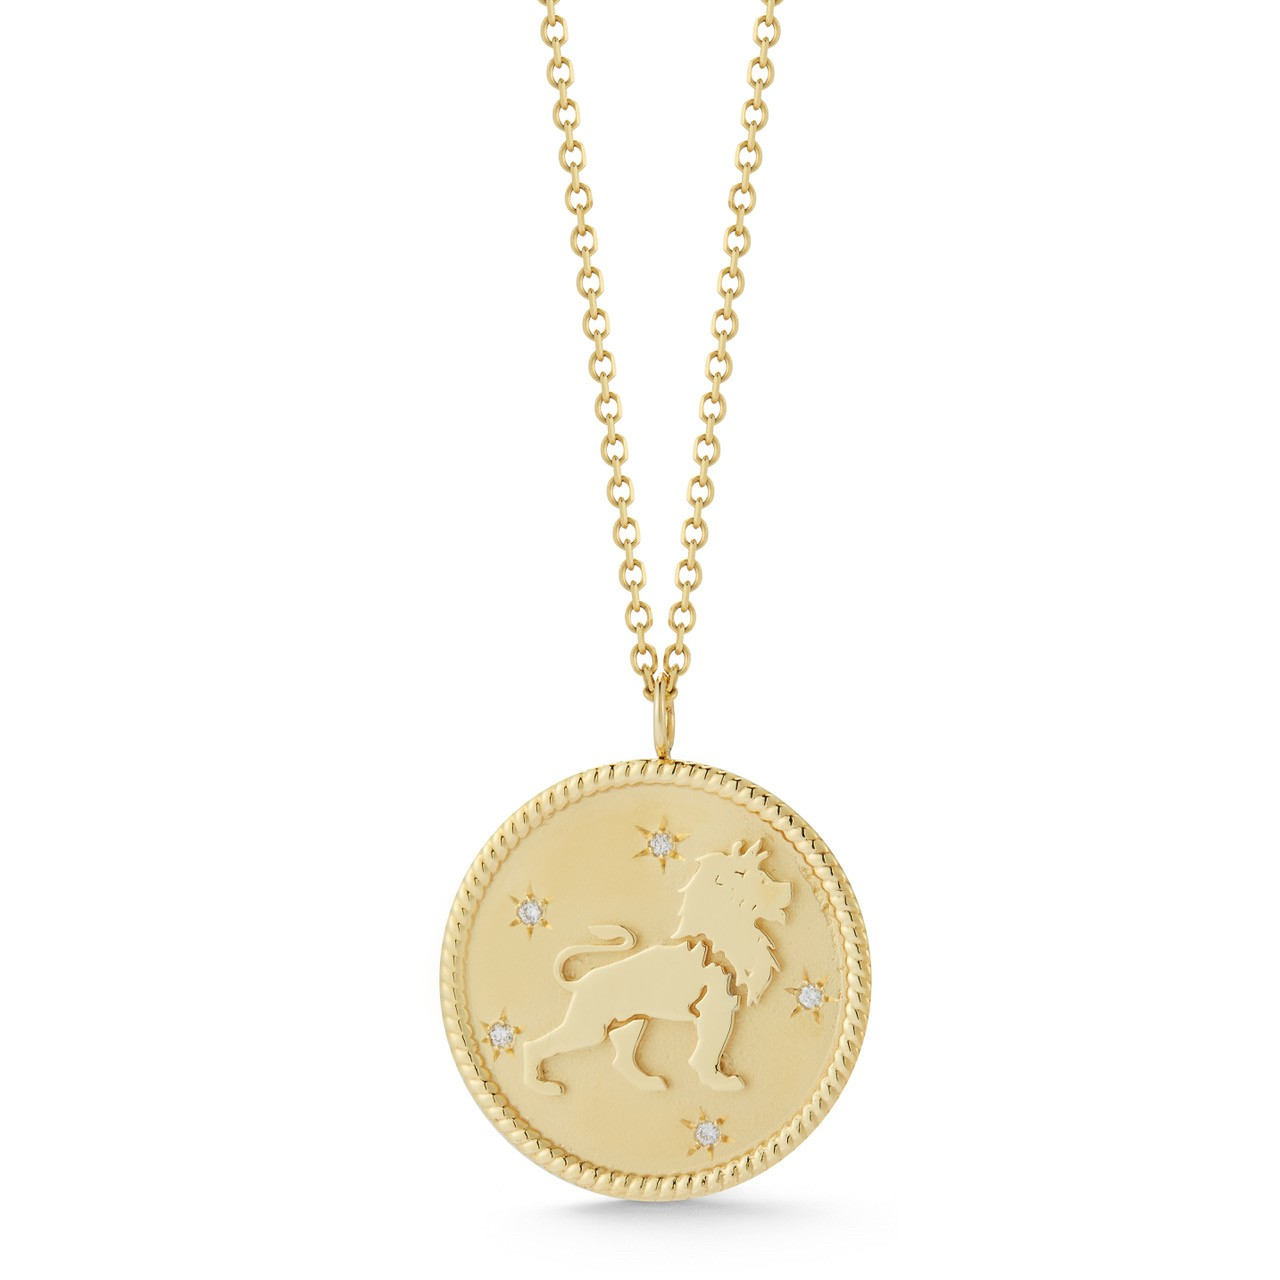 Zodiac Medallion with Chain